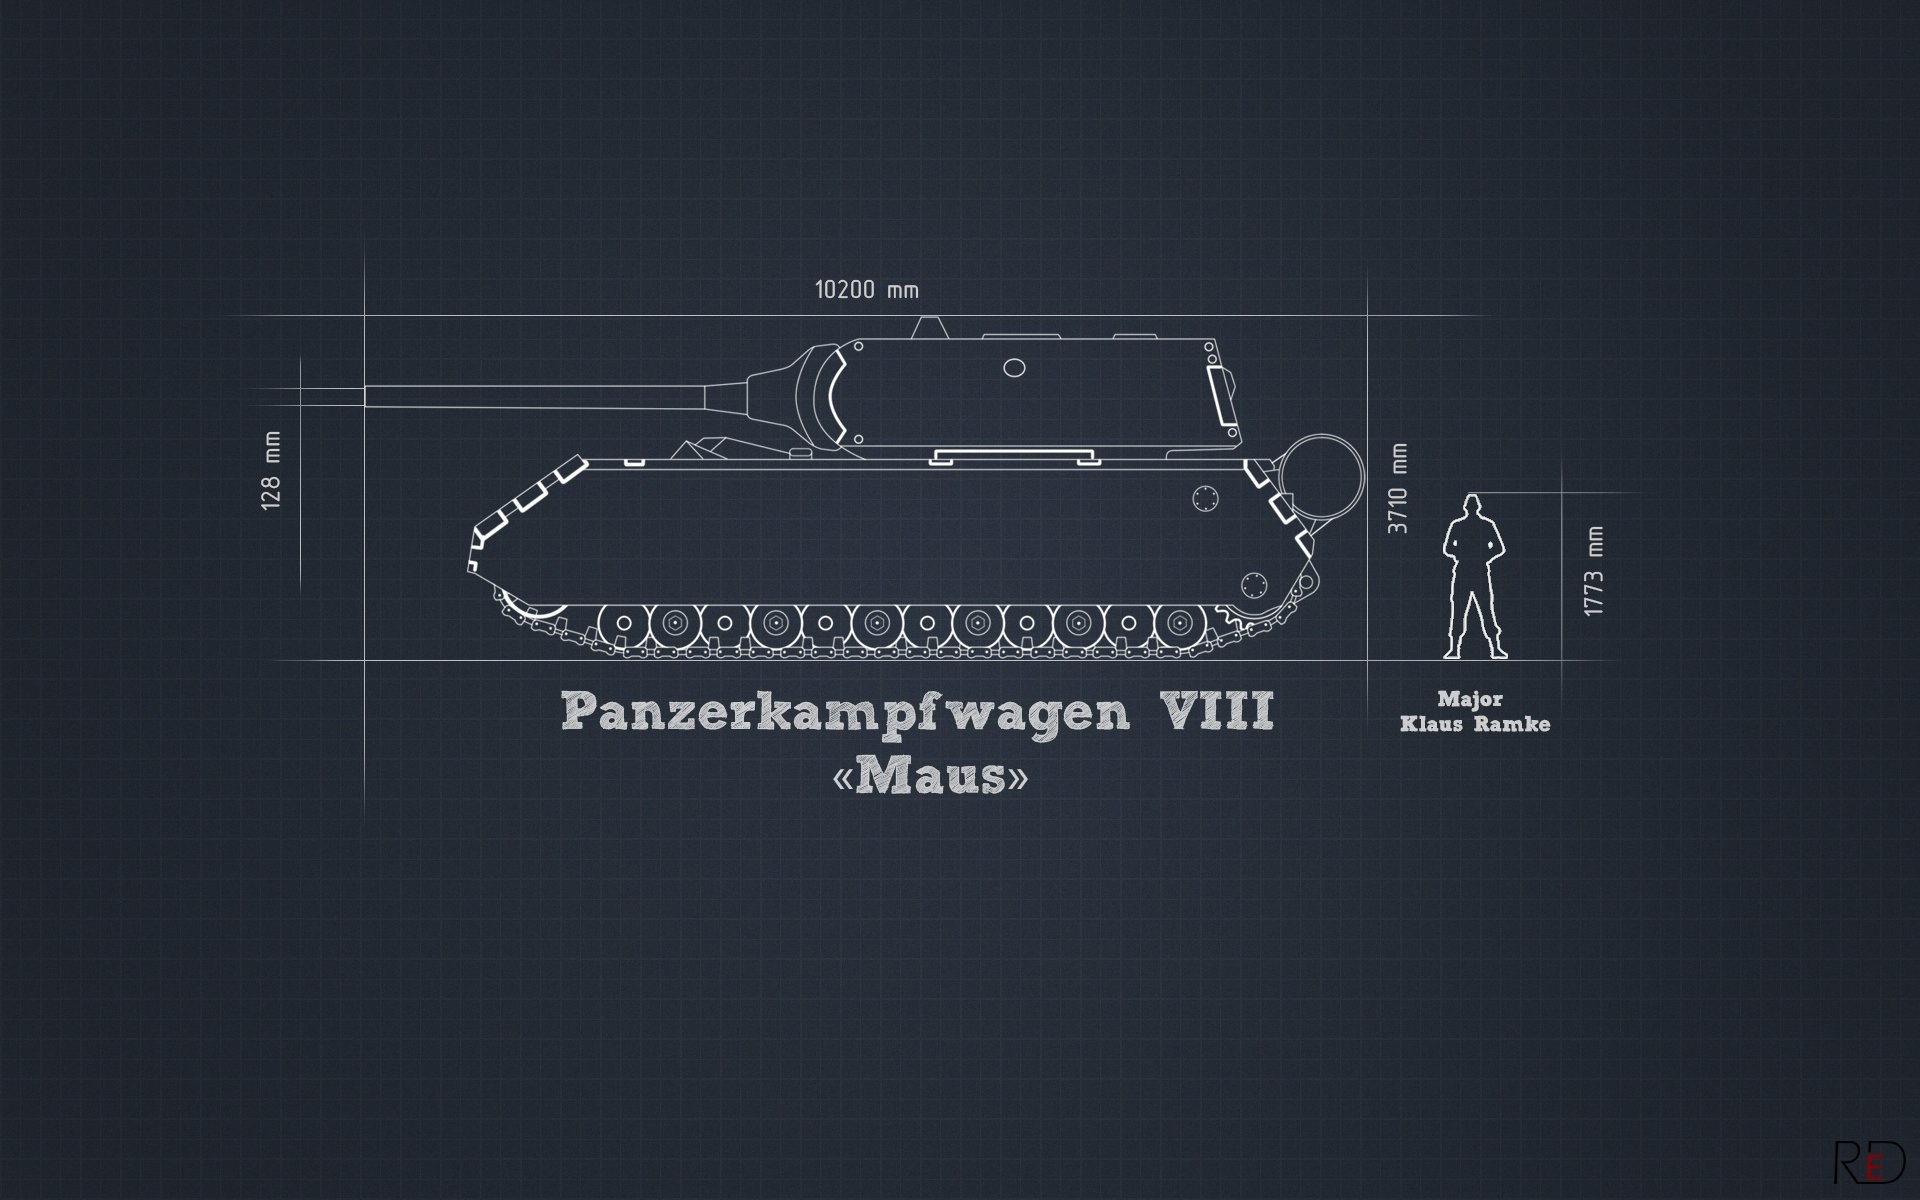 wot ram ii matchmaking Matchmaking the composition of tanks in each team is a task of matchmaker it works in following manner it takes one tank from the queue and looks at his tier.